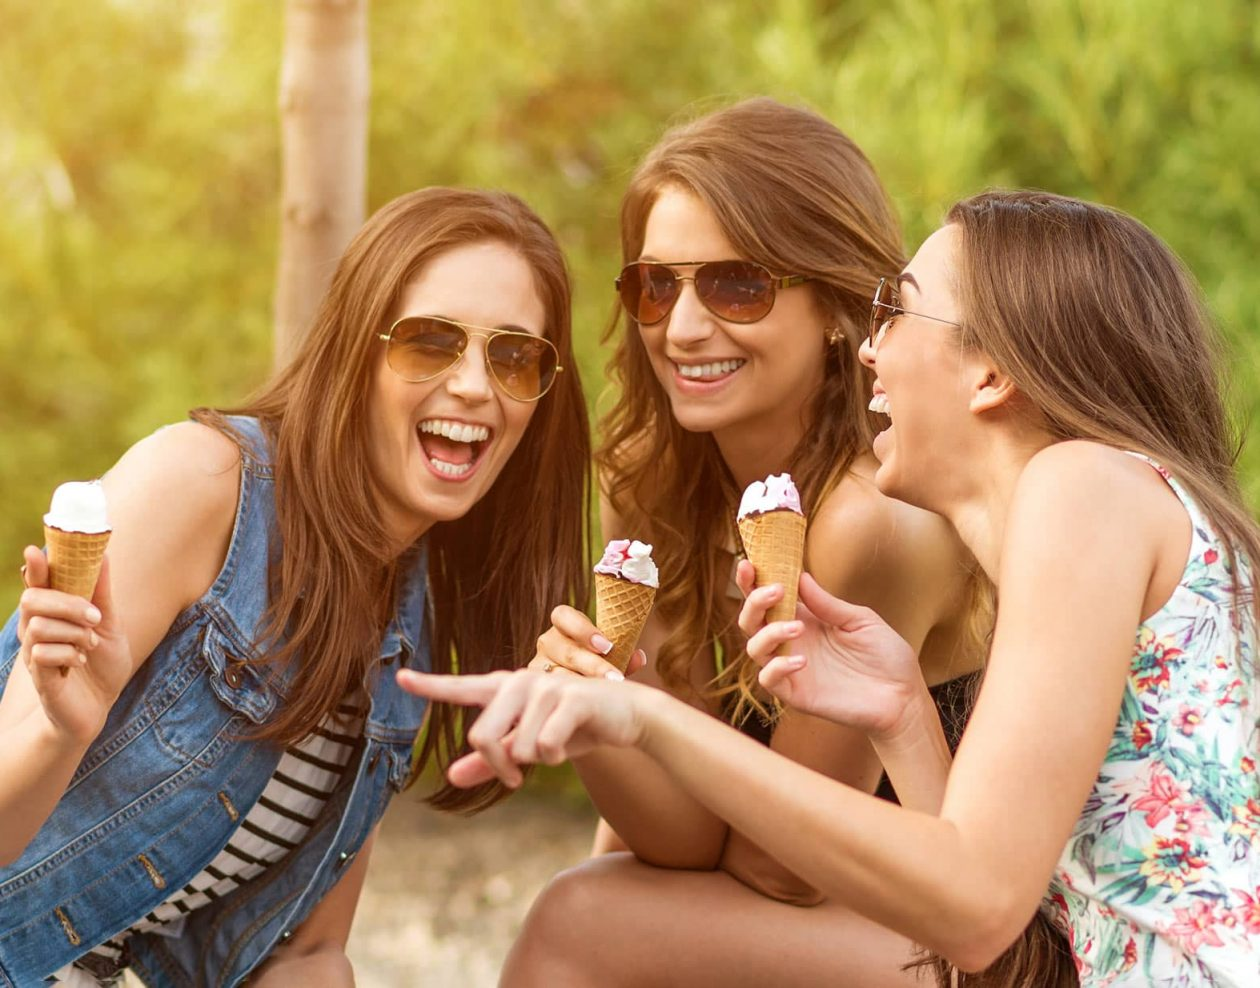 Girlfriends enjoying ice cream outdoors